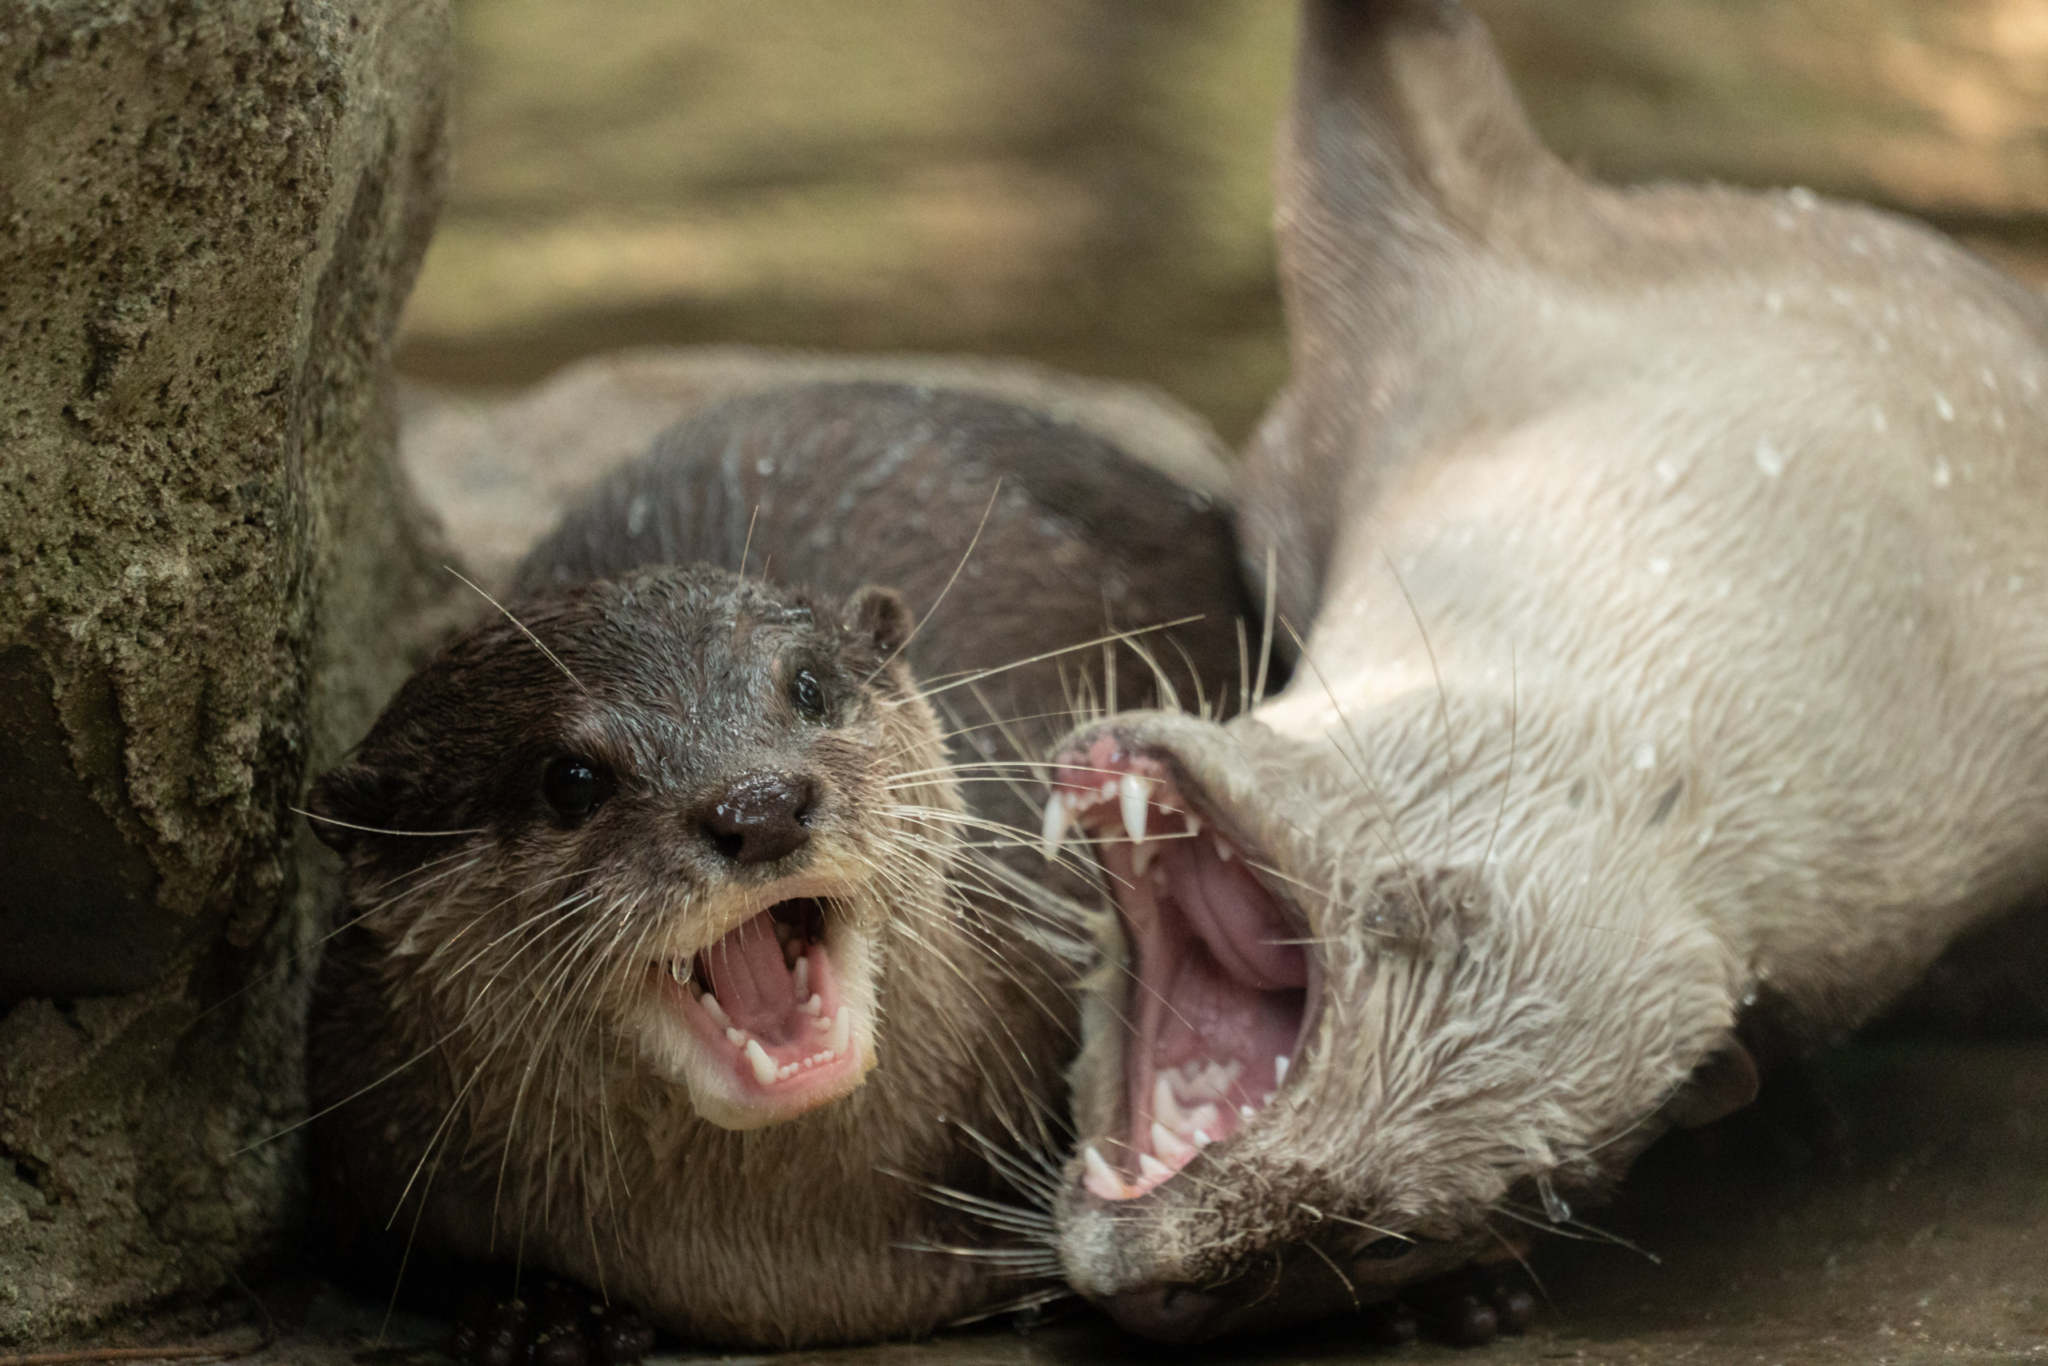 An Otter's journey to freedom…